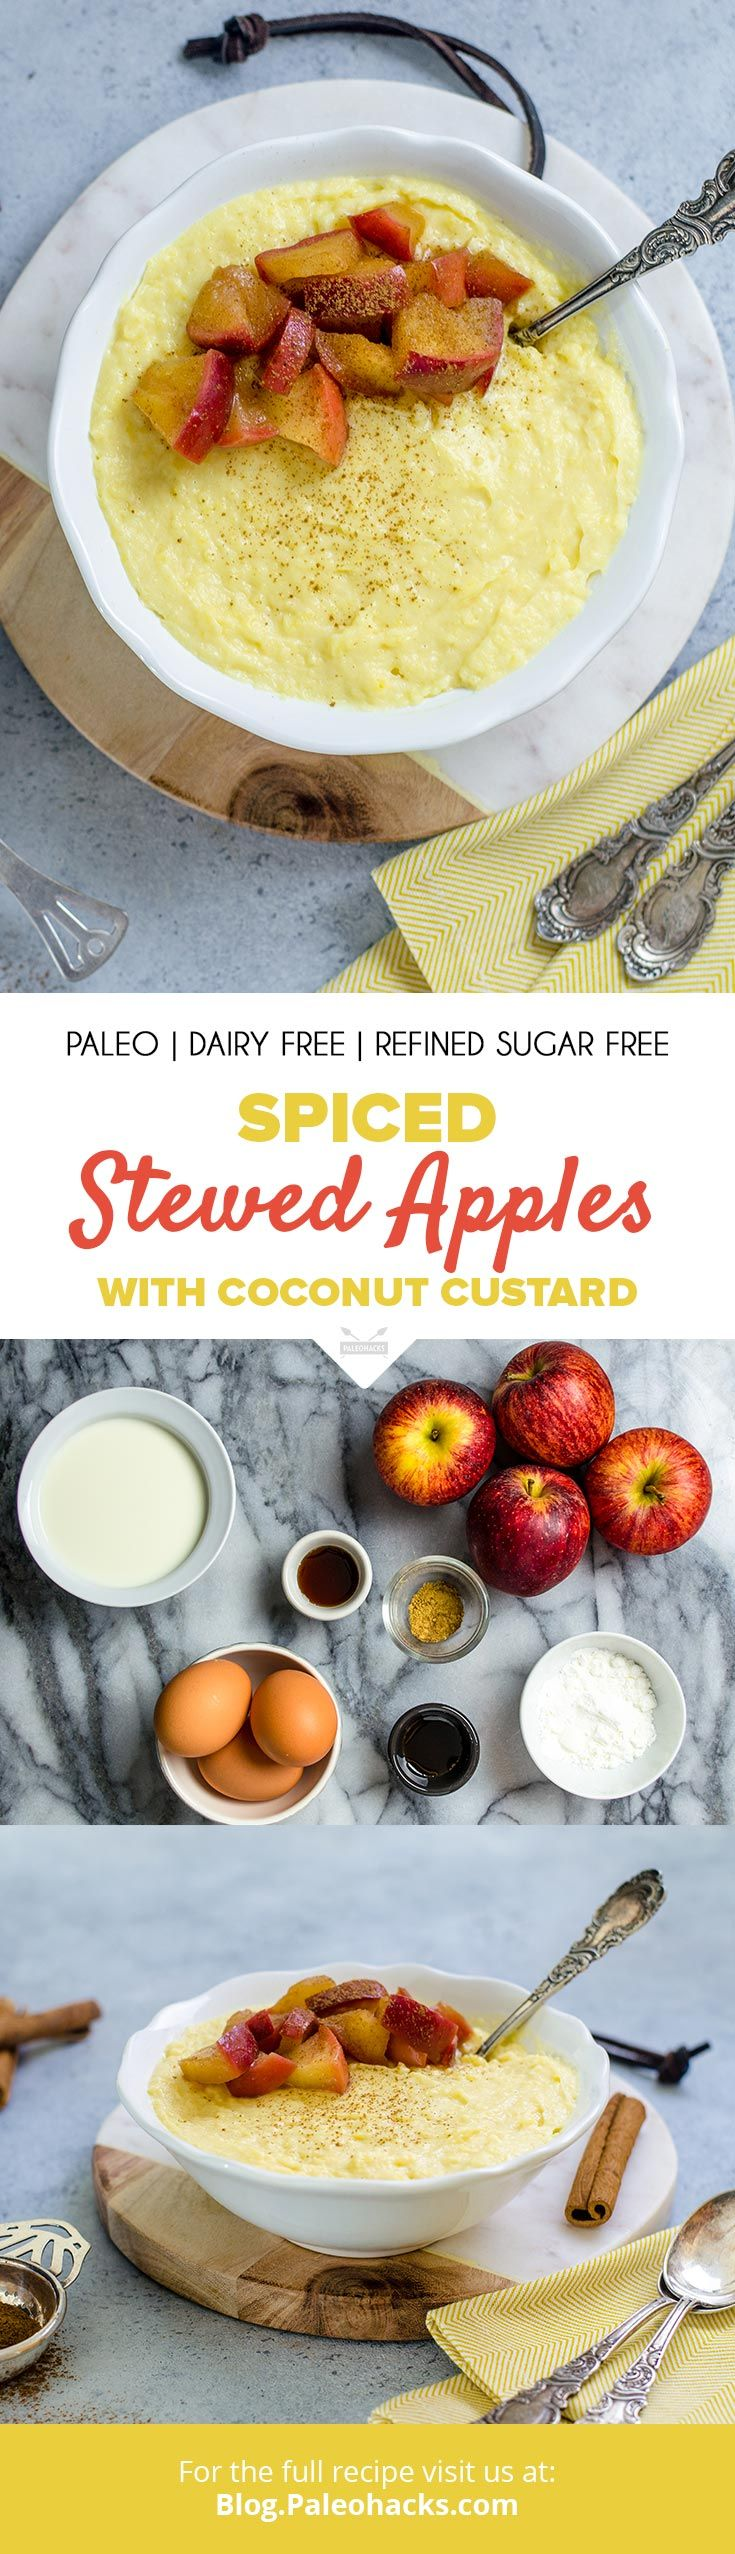 Top creamy, dairy-free coconut custard with warm stewed apples for a light and healthy dessert. Get the full recipe here: http://paleo.co/stewedapples